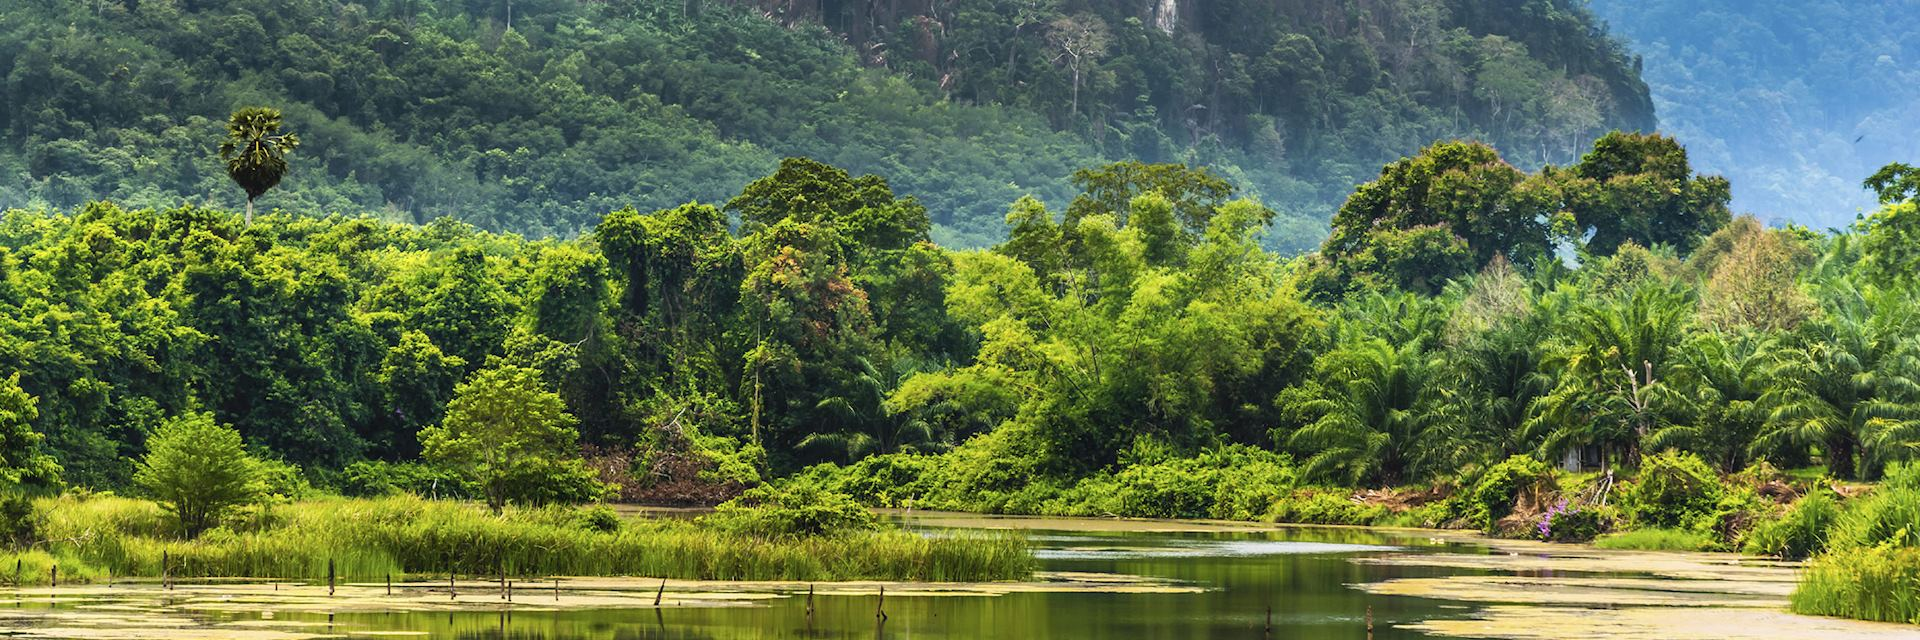 The tropical rainforest of Khao Yai National Park